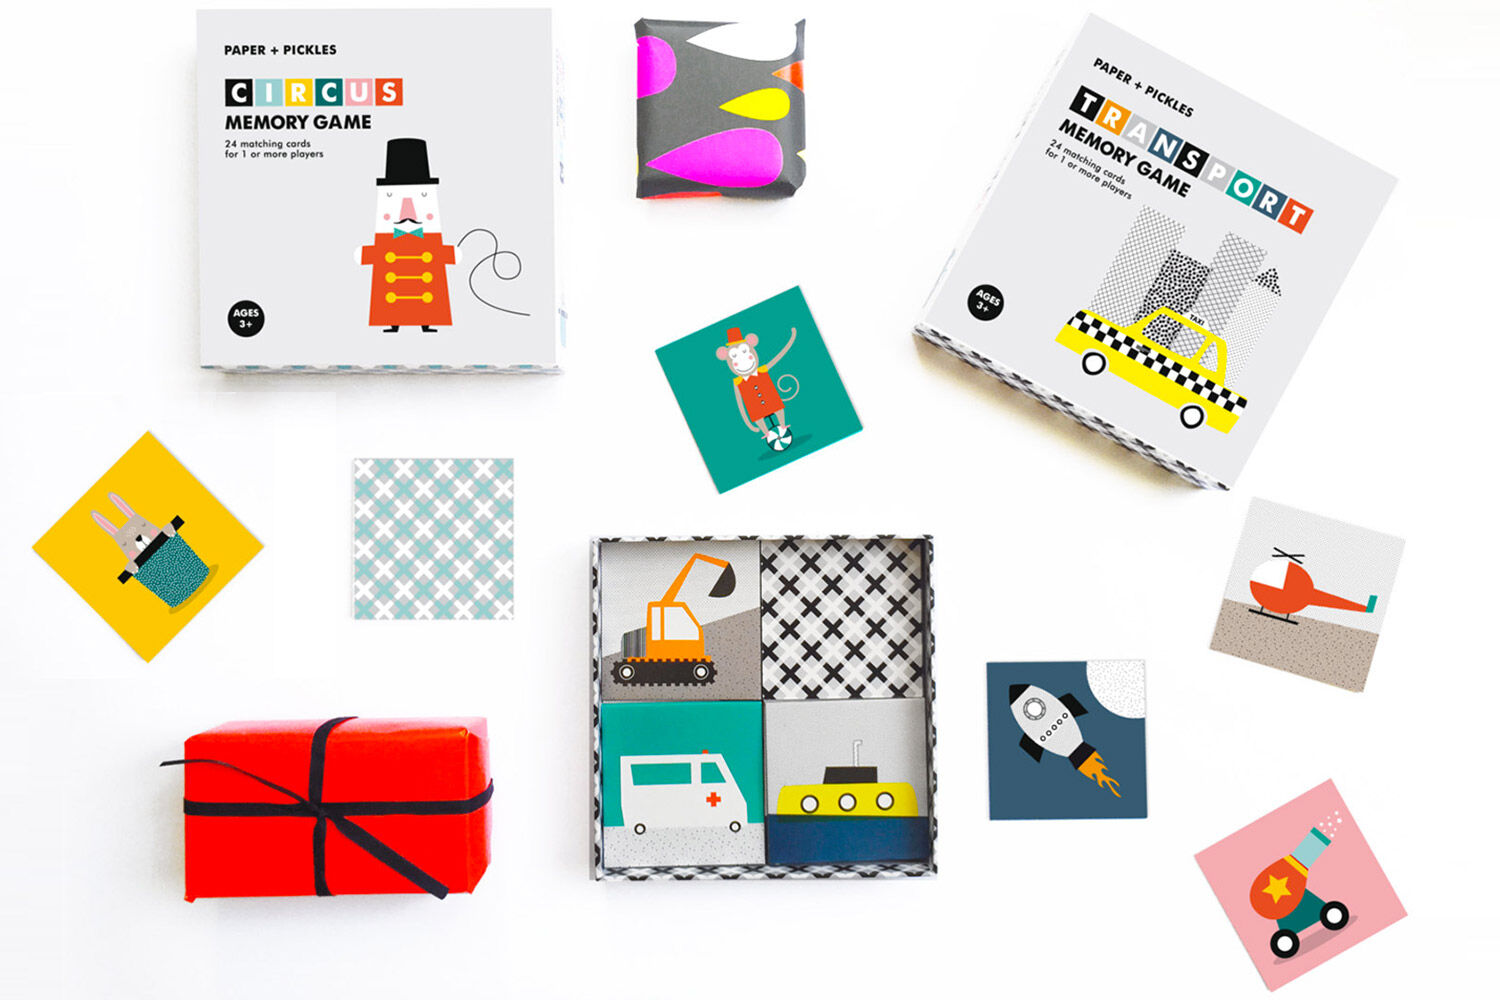 Paper & Pickles circus matching game